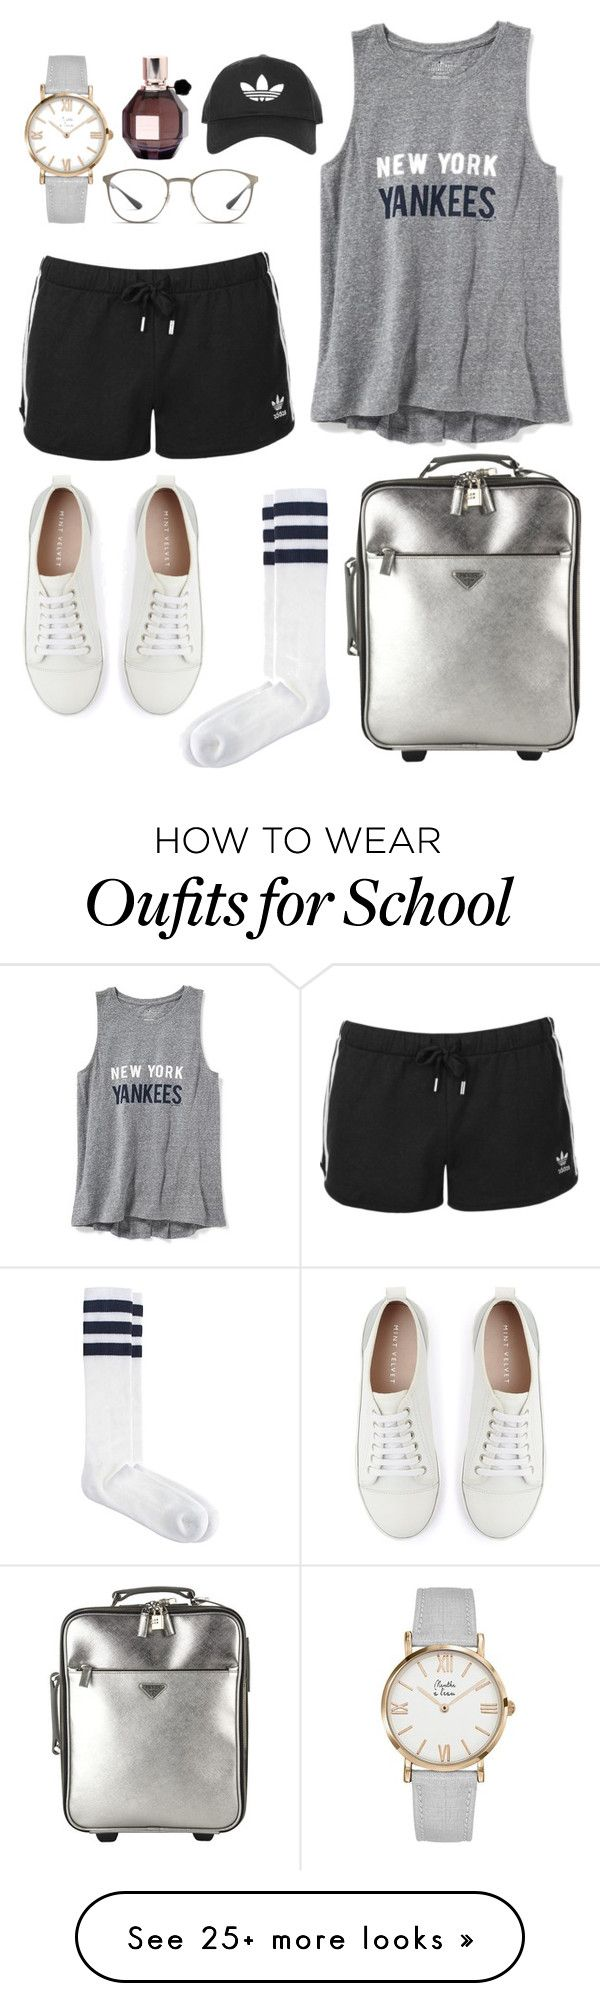 """high school"" by adele-adik on Polyvore featuring Prada, Ray-Ban, Mint Velvet, Old Navy, American Apparel, Topshop and Viktor & Rolf"